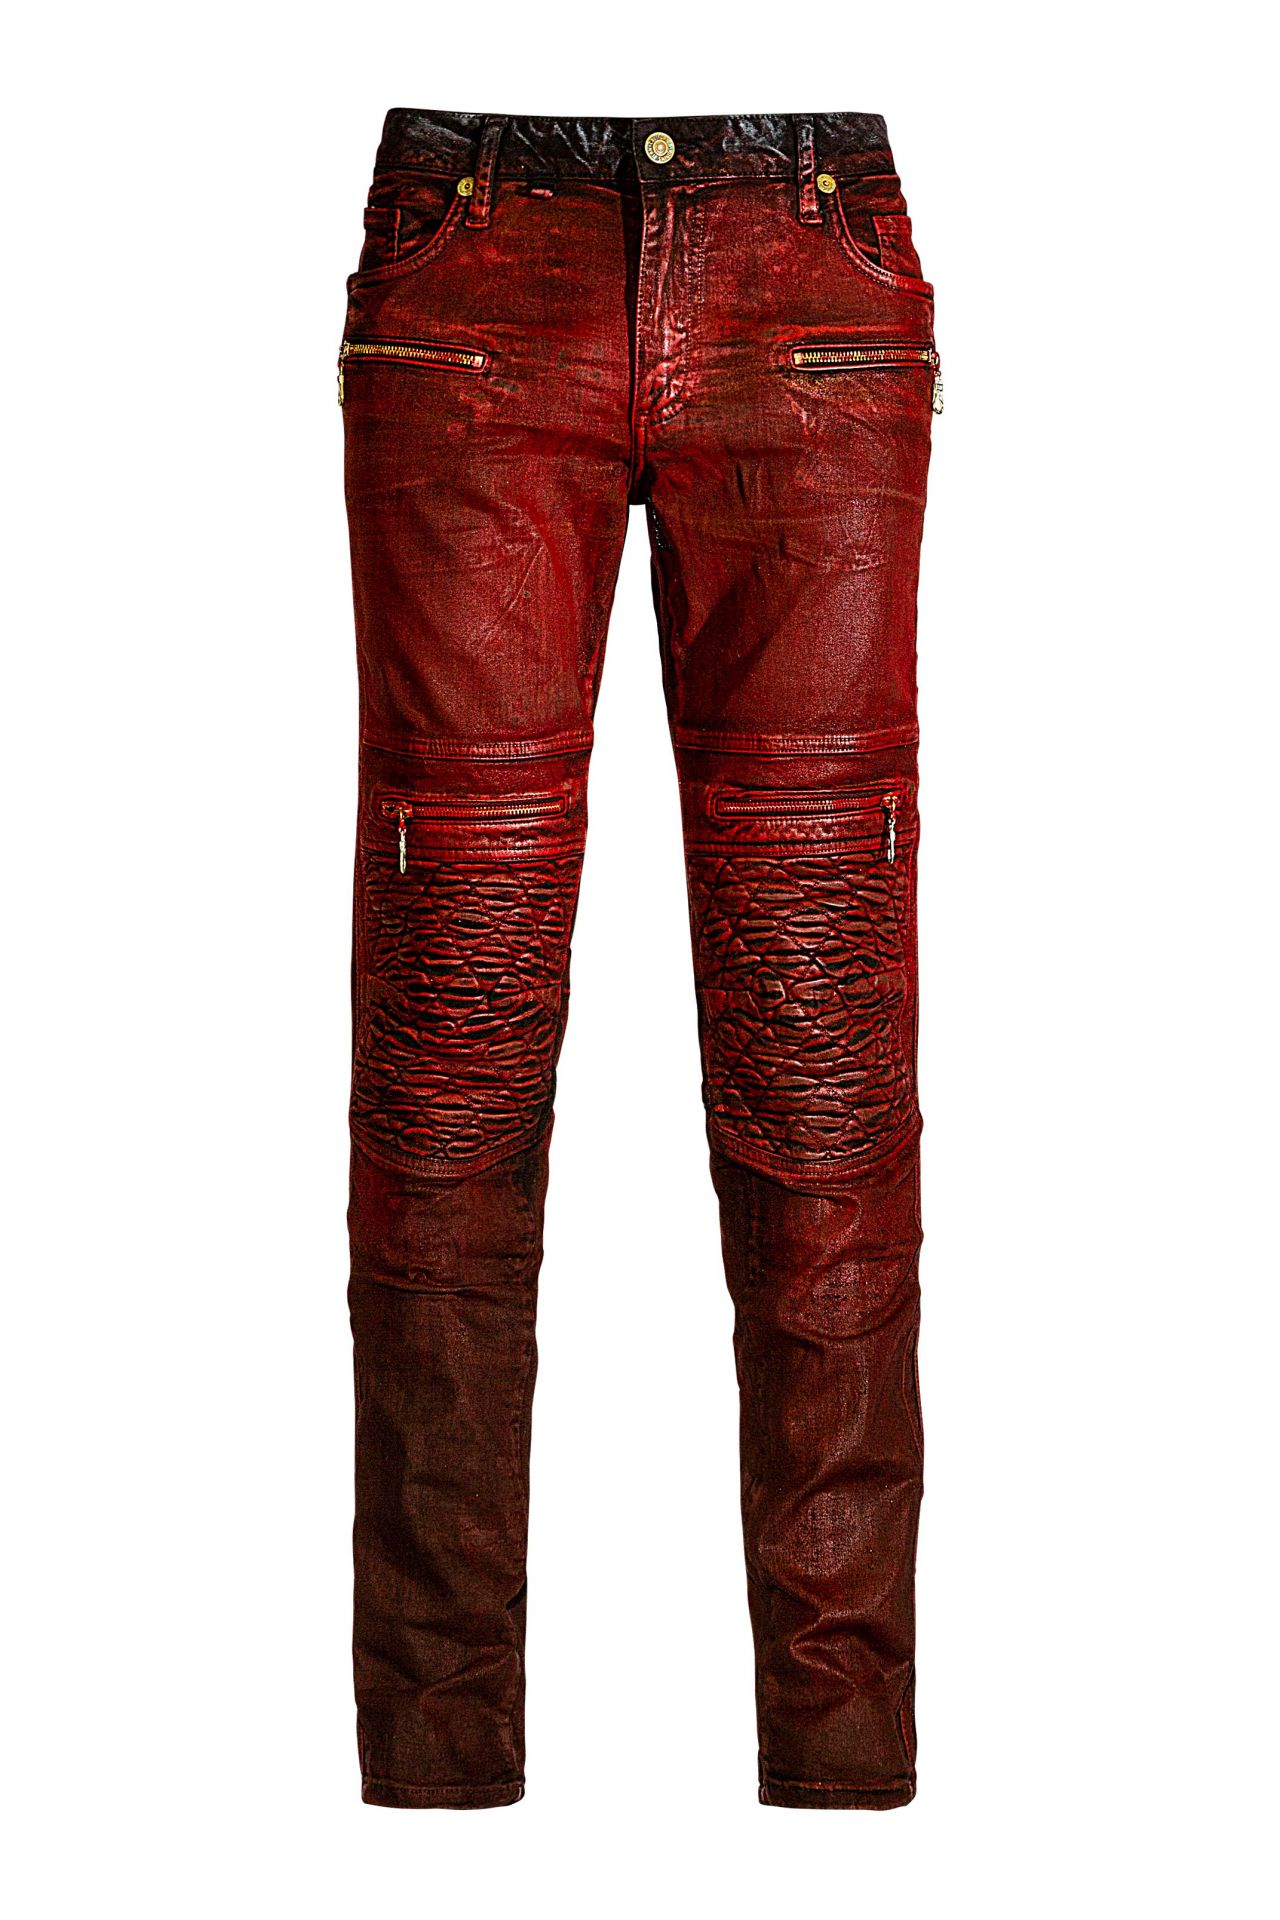 BIKER IN WAXED DIGGER RED